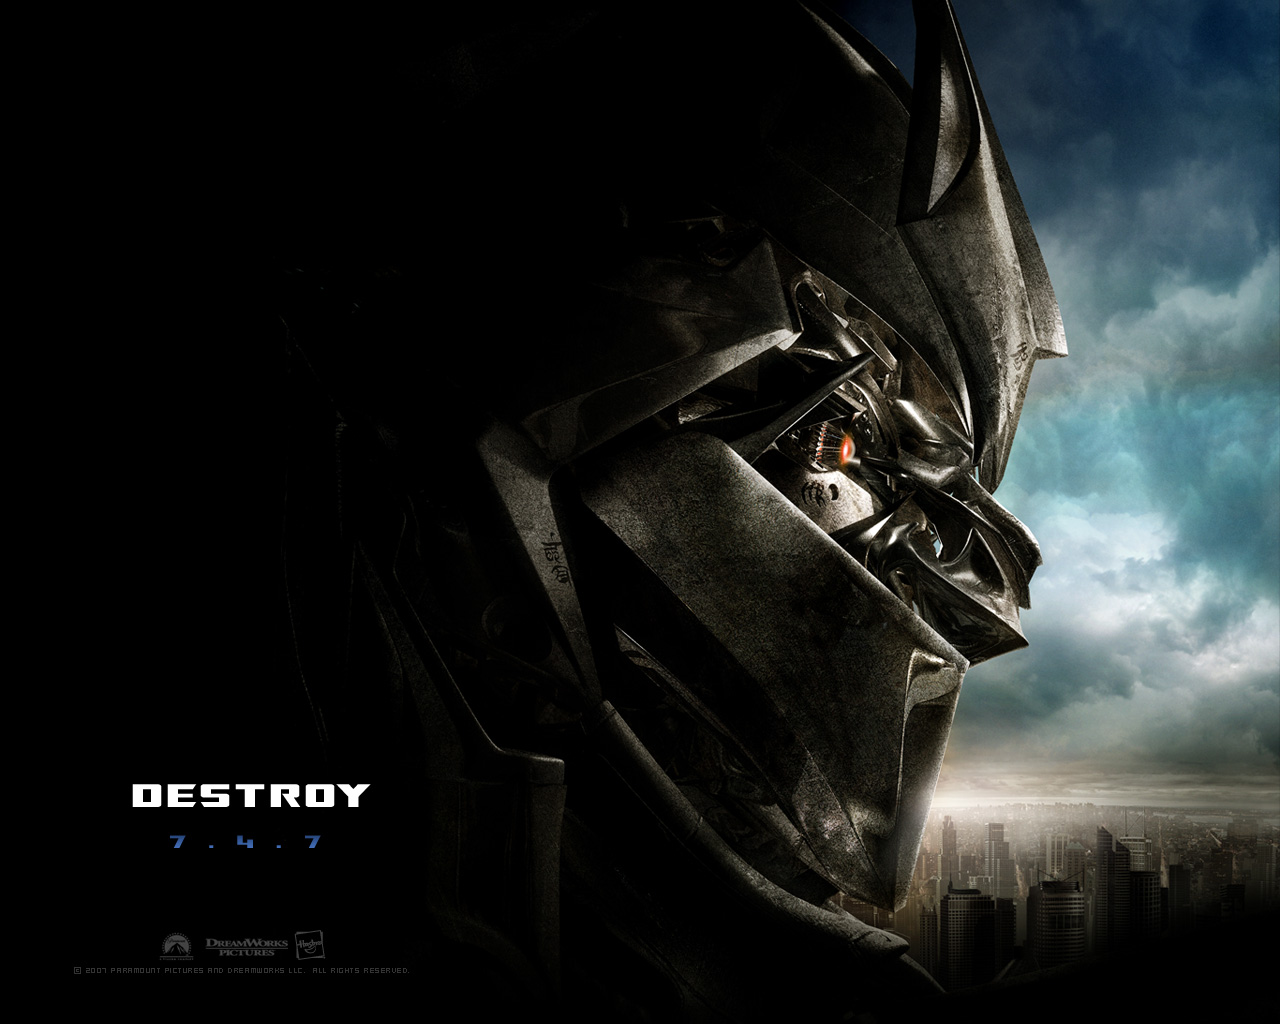 Transformers Movie: Megatron - Transformers Wallpaper (35015) - Fanpop